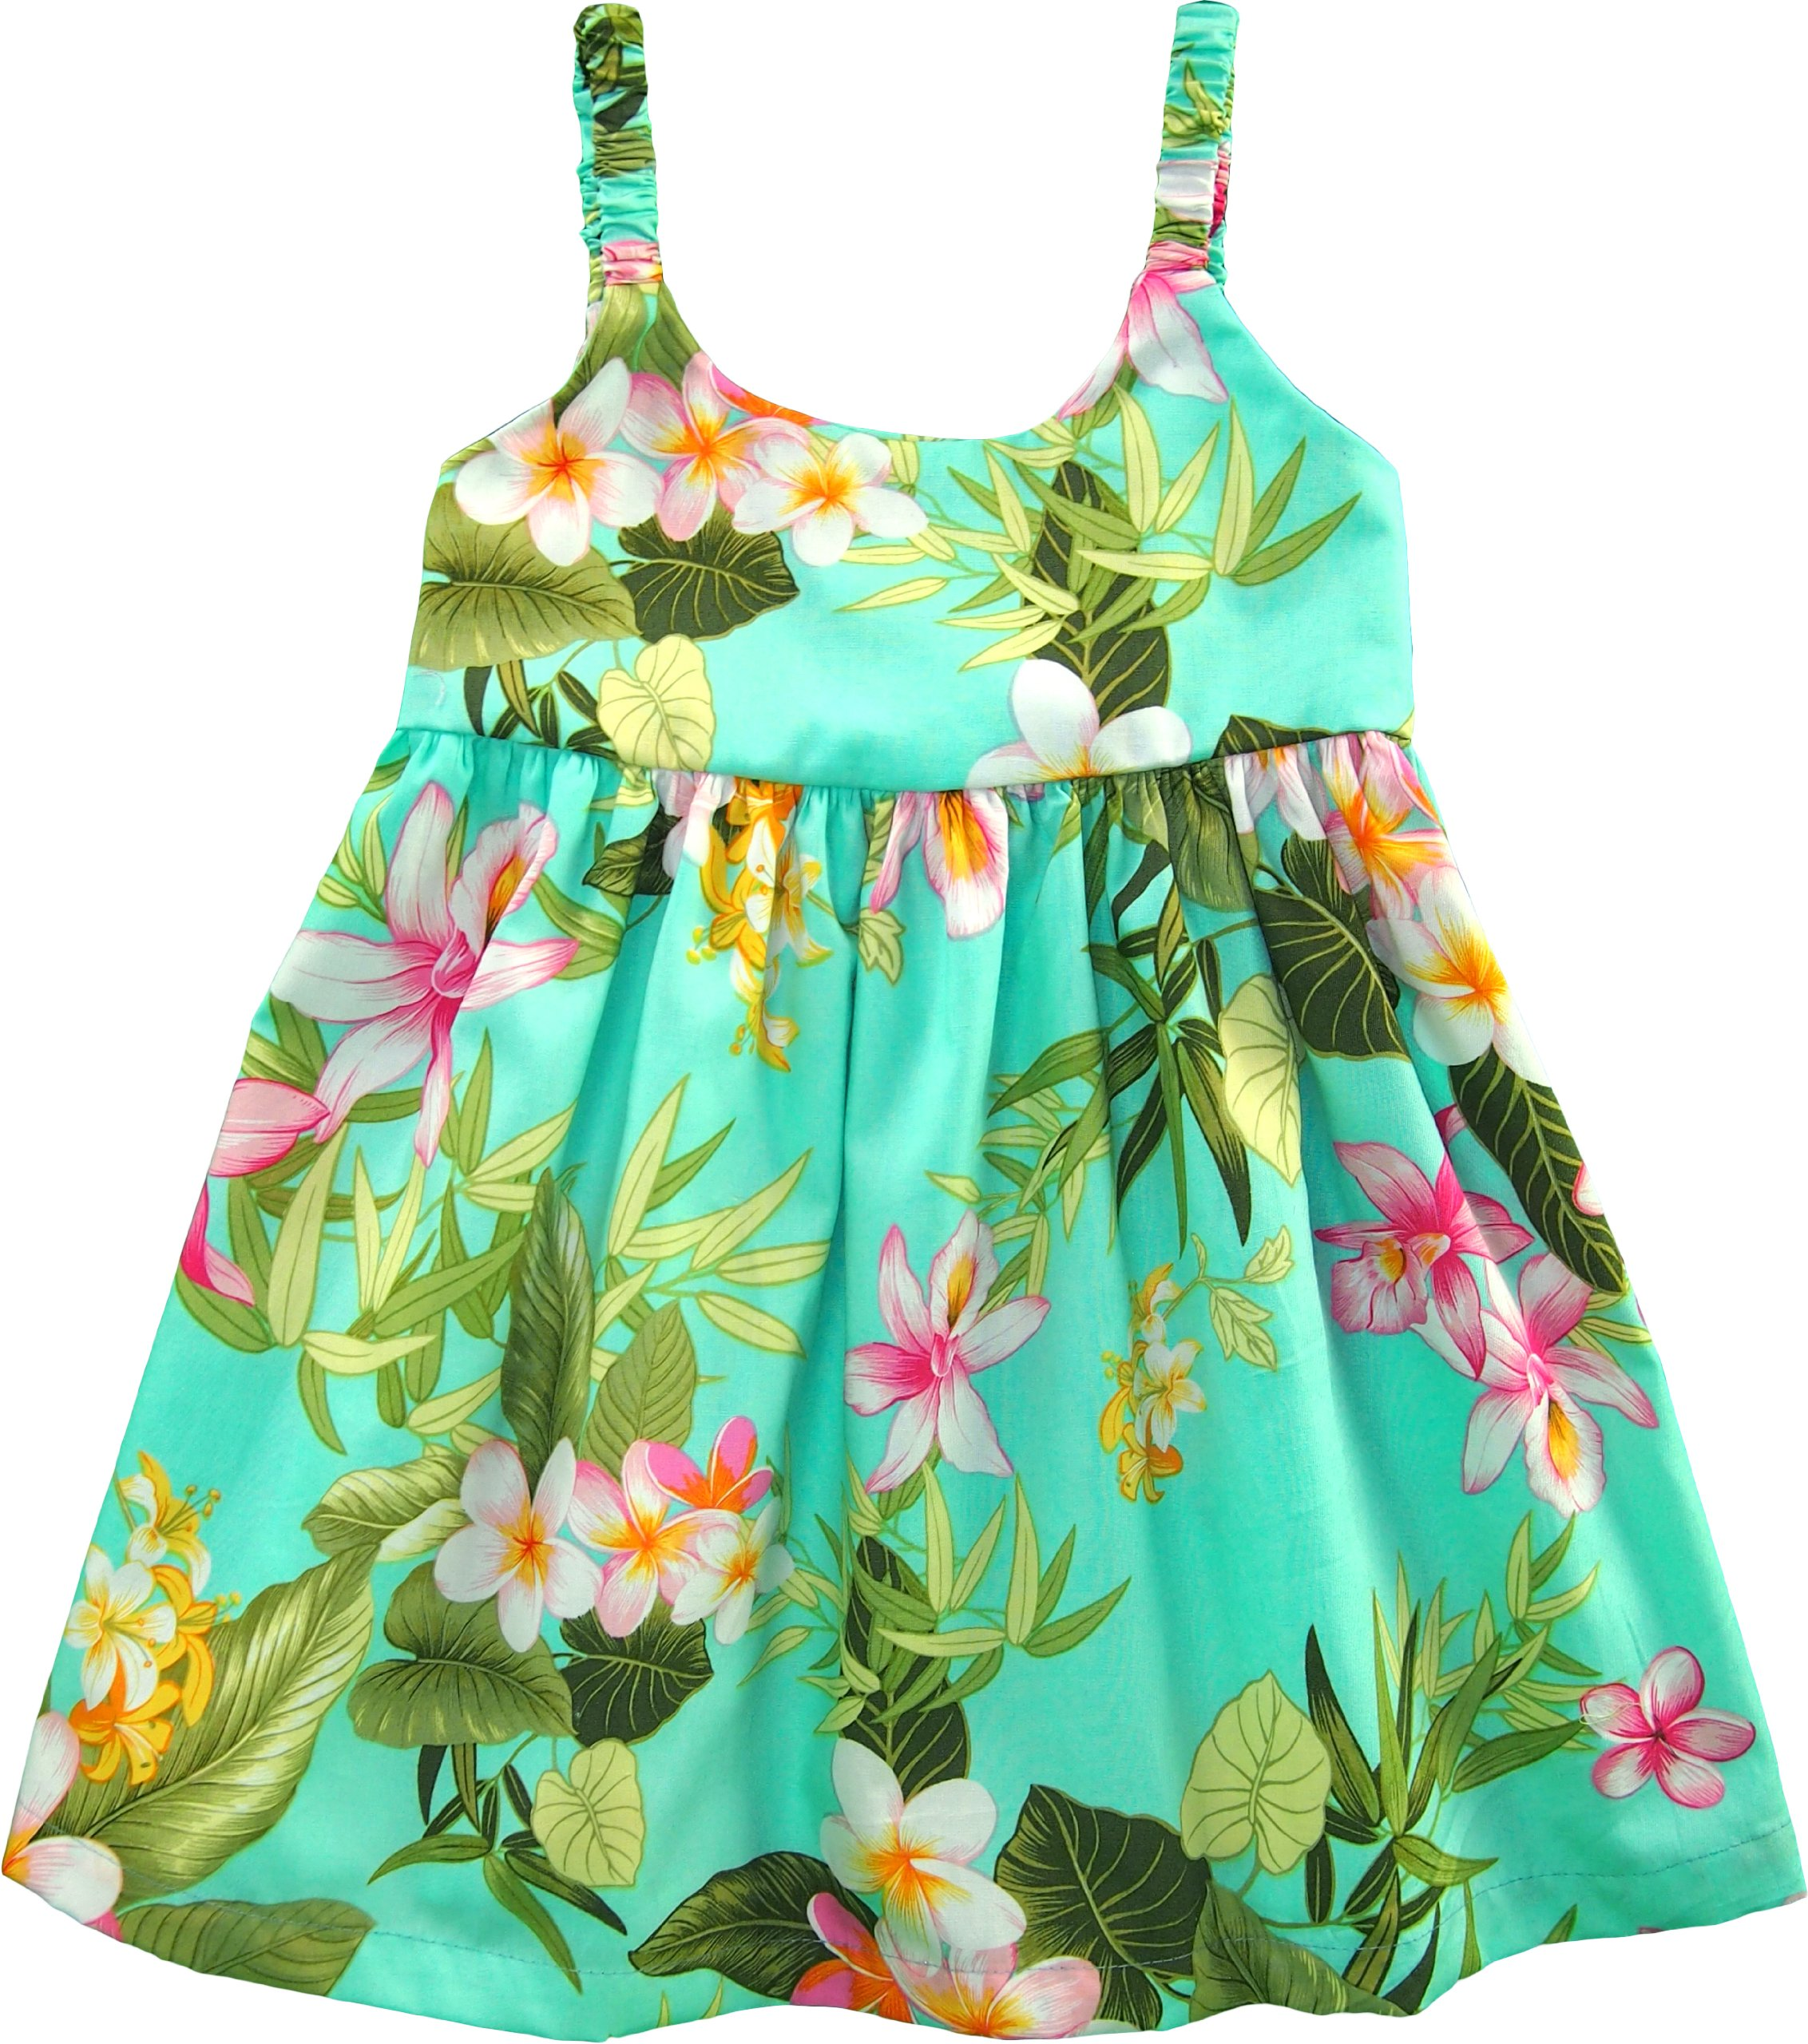 RJC Girls Orchid Plumeria Bungee Dress Aqua 2T